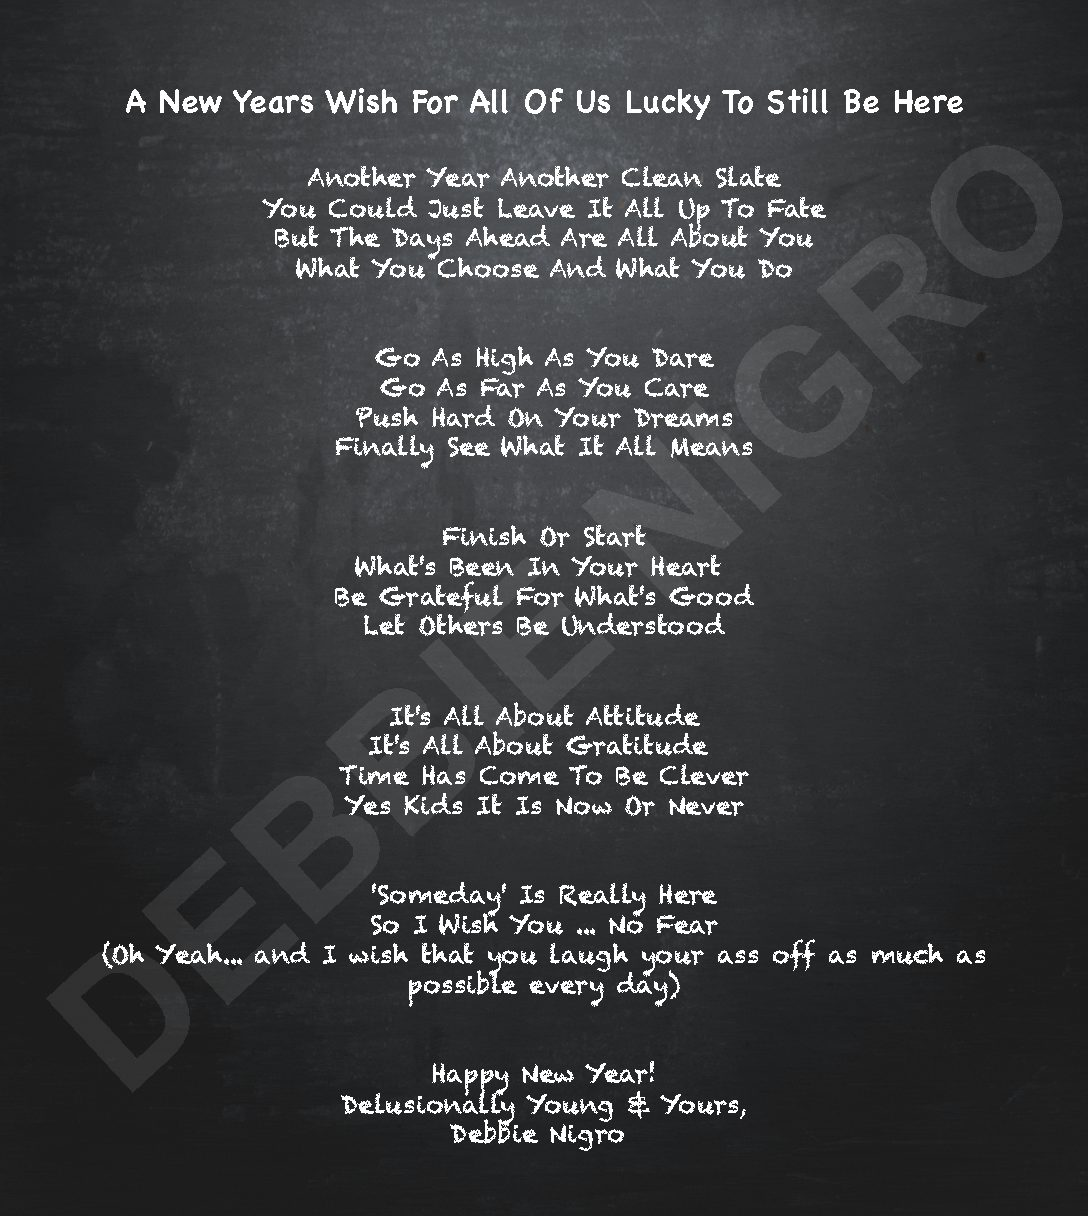 A New Years Wish For All Of Us Lucky To Still Be Here